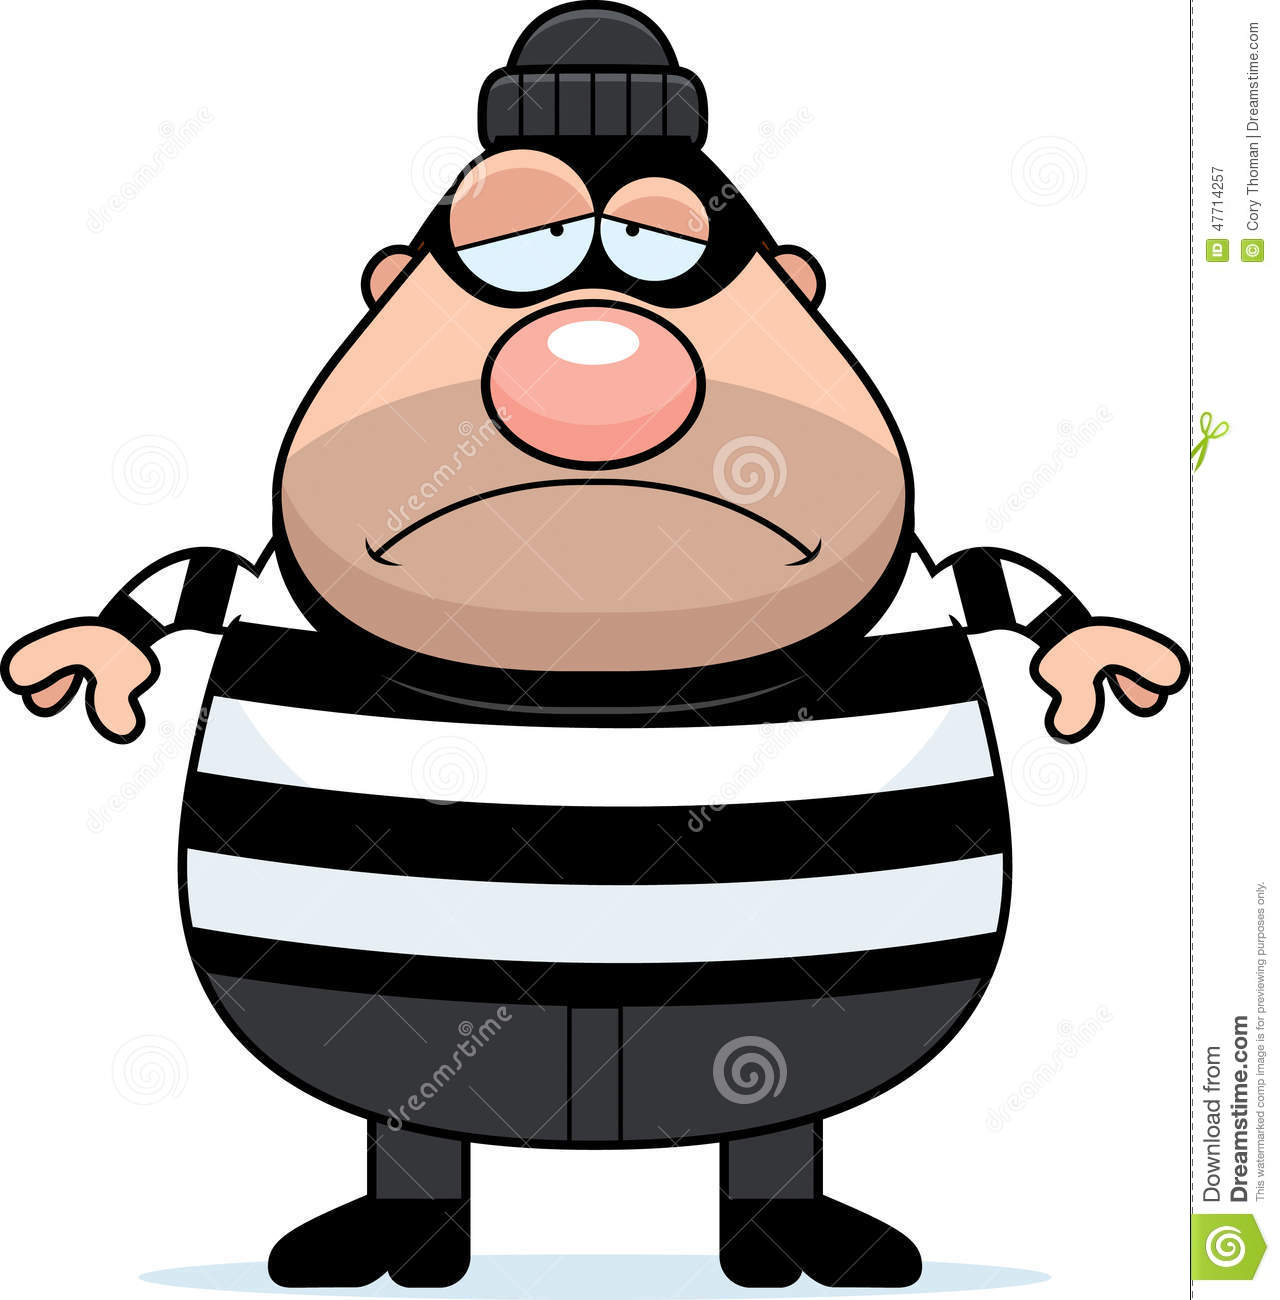 cartoon burglar stock illustrations 2 315 cartoon burglar stock rh dreamstime com burglar alarm clipart burglar clipart black and white